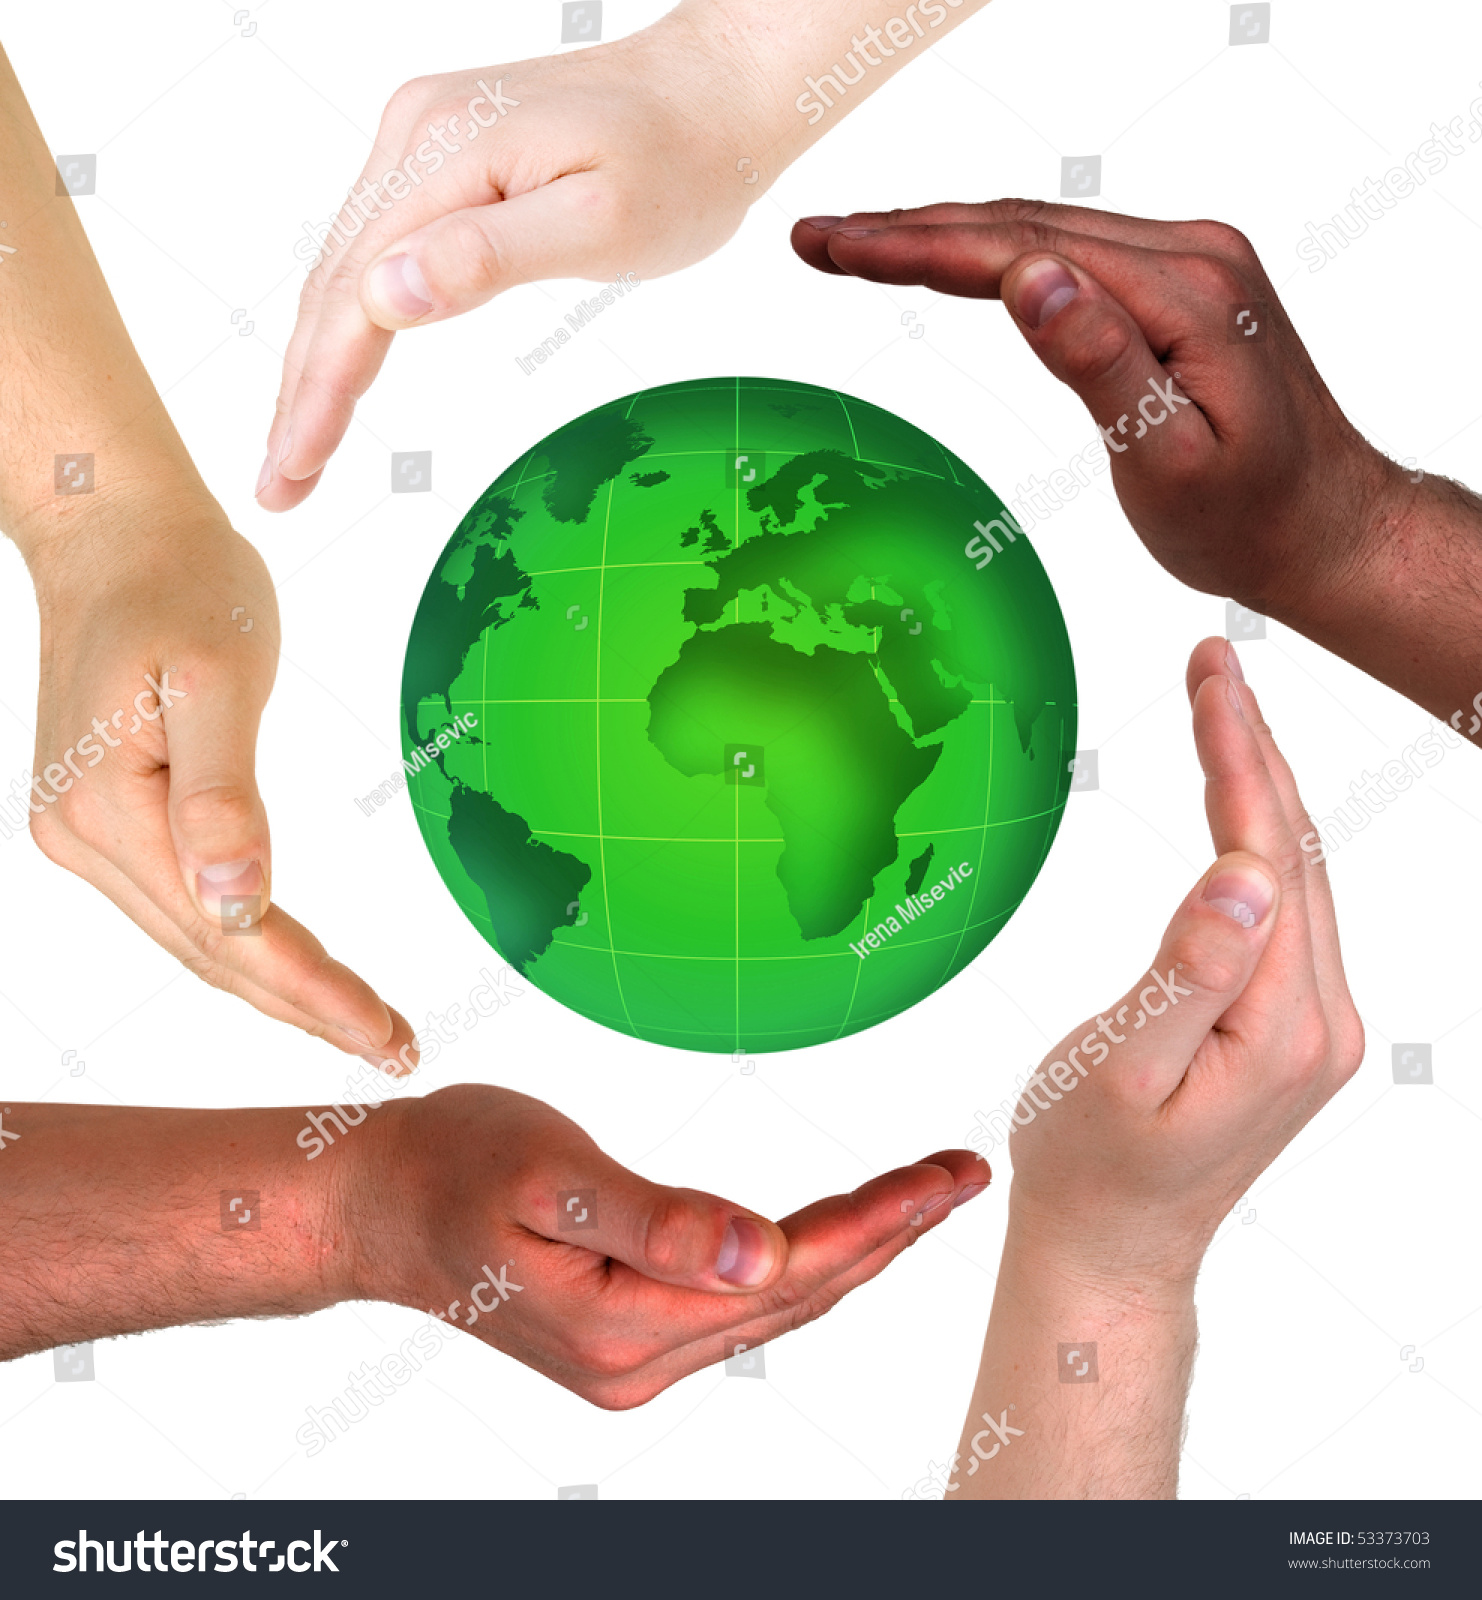 Conceptual safety symbol made hands over stock photo 53373703 conceptual safety symbol made from hands over globe biocorpaavc